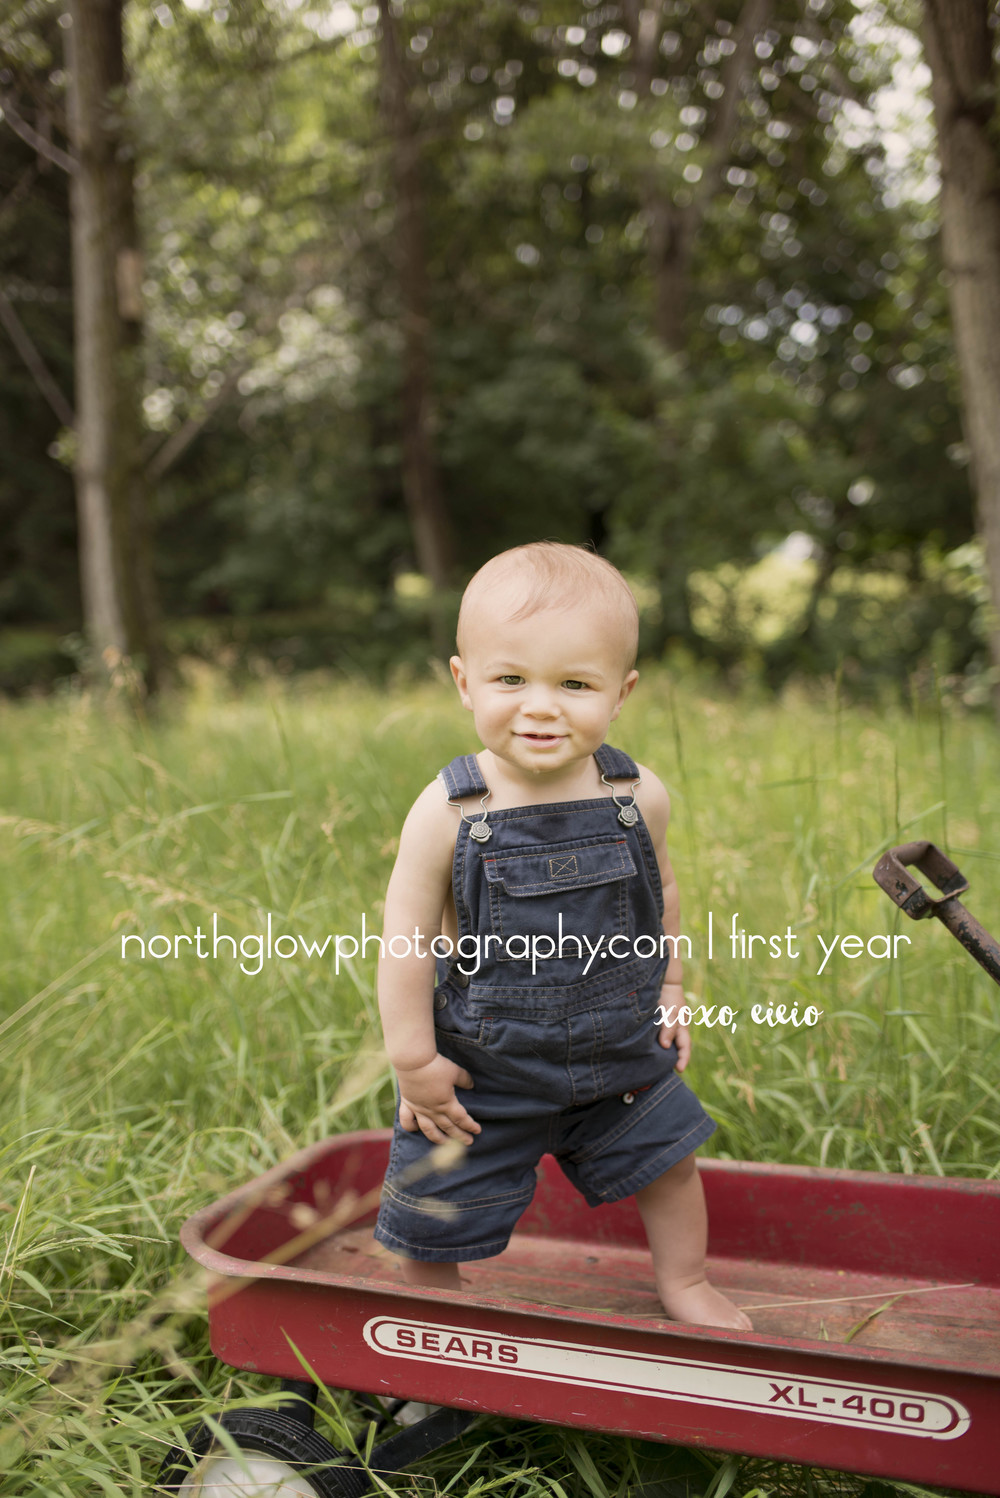 That Little Smile | NorthGlow Photography